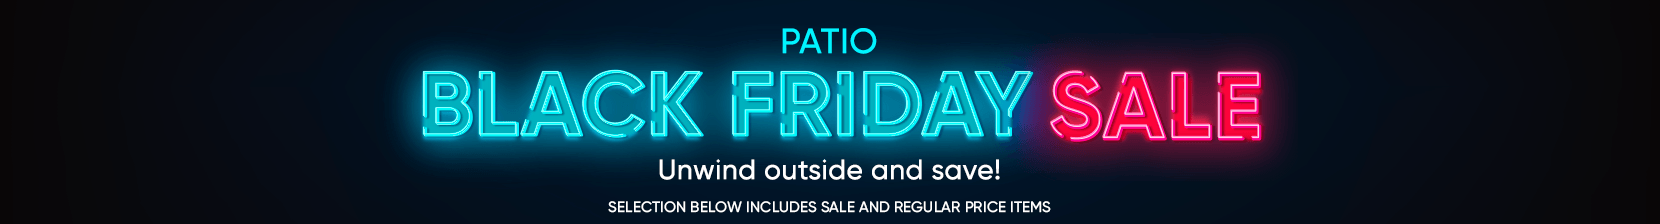 patio black friday sale. unwind outside and save. selection below includes sale and regular price items